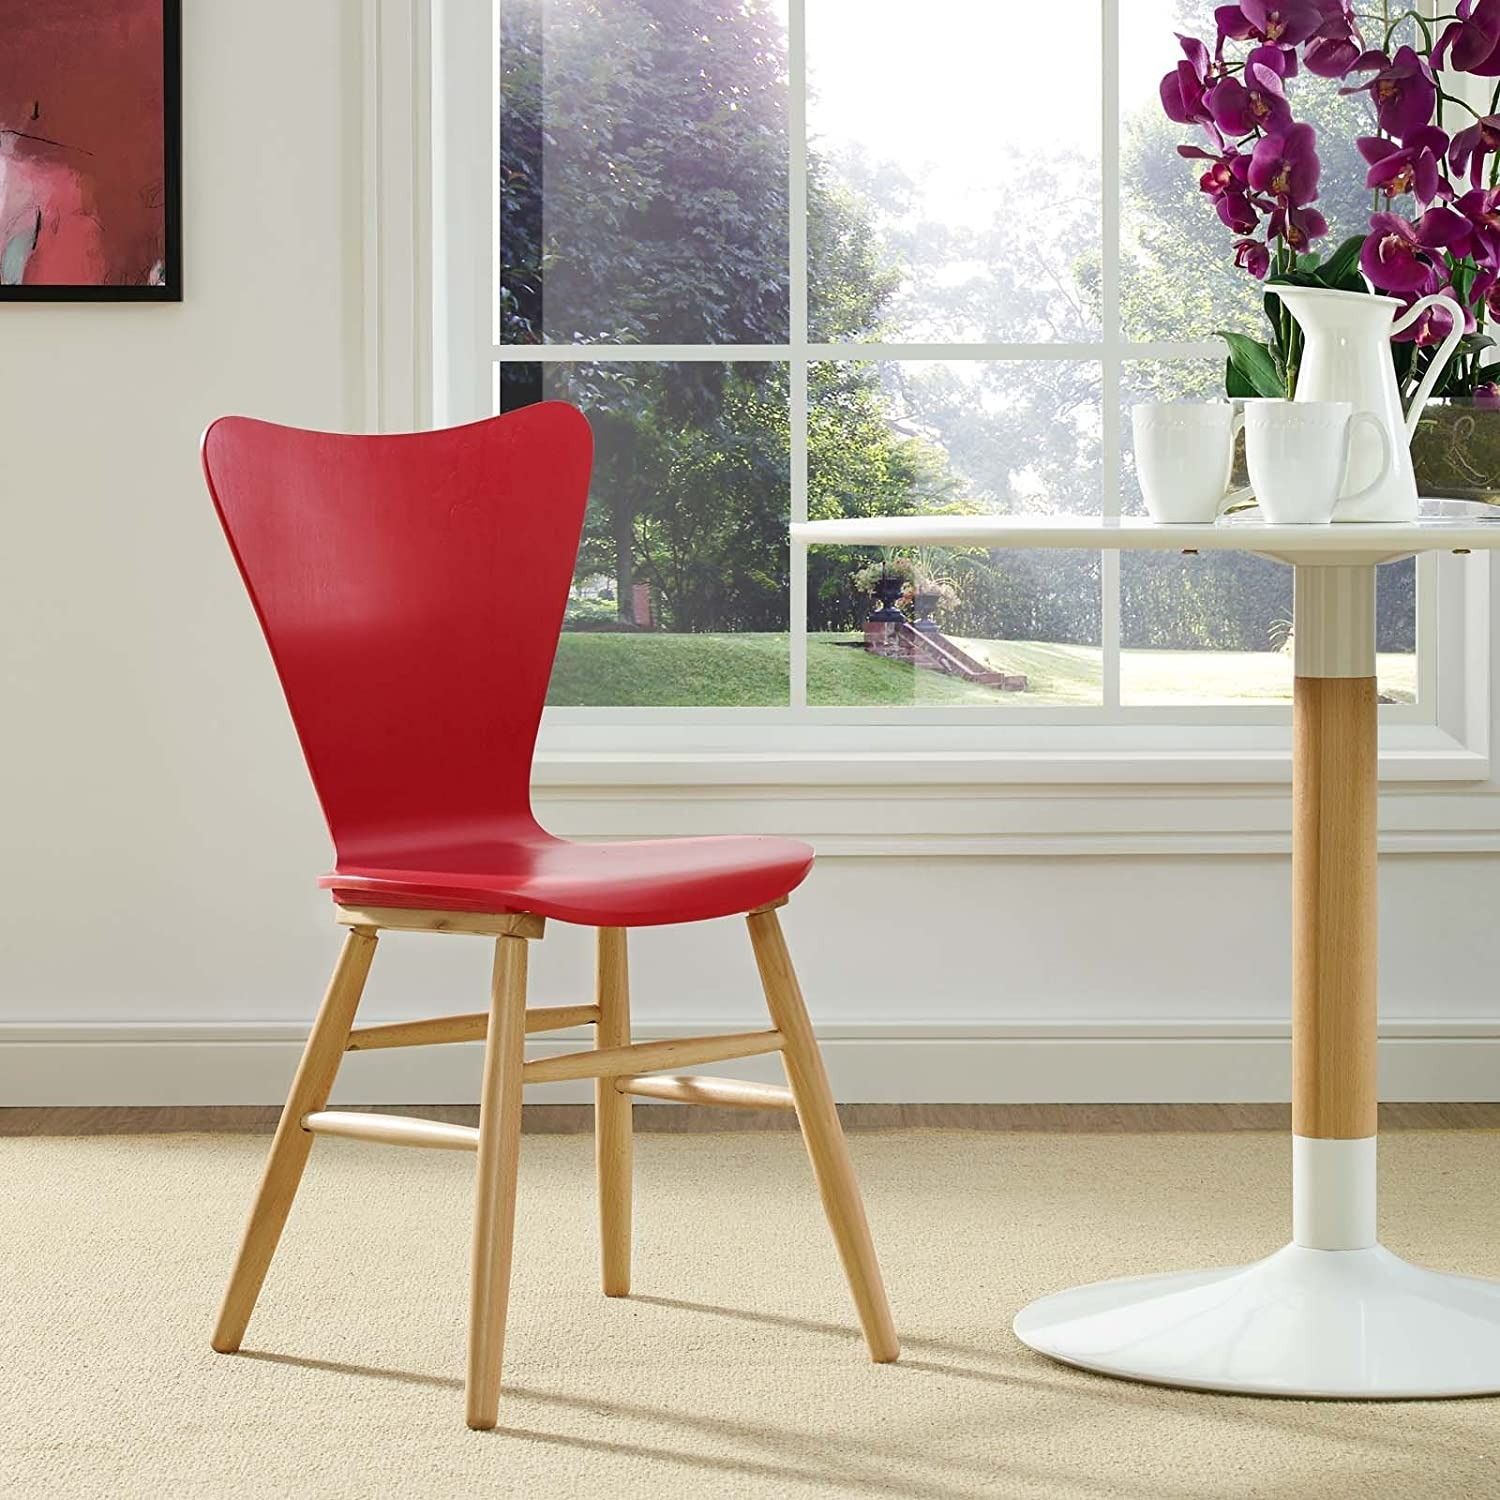 Mid-Century Style Dining Chair In Red Finish - image-3